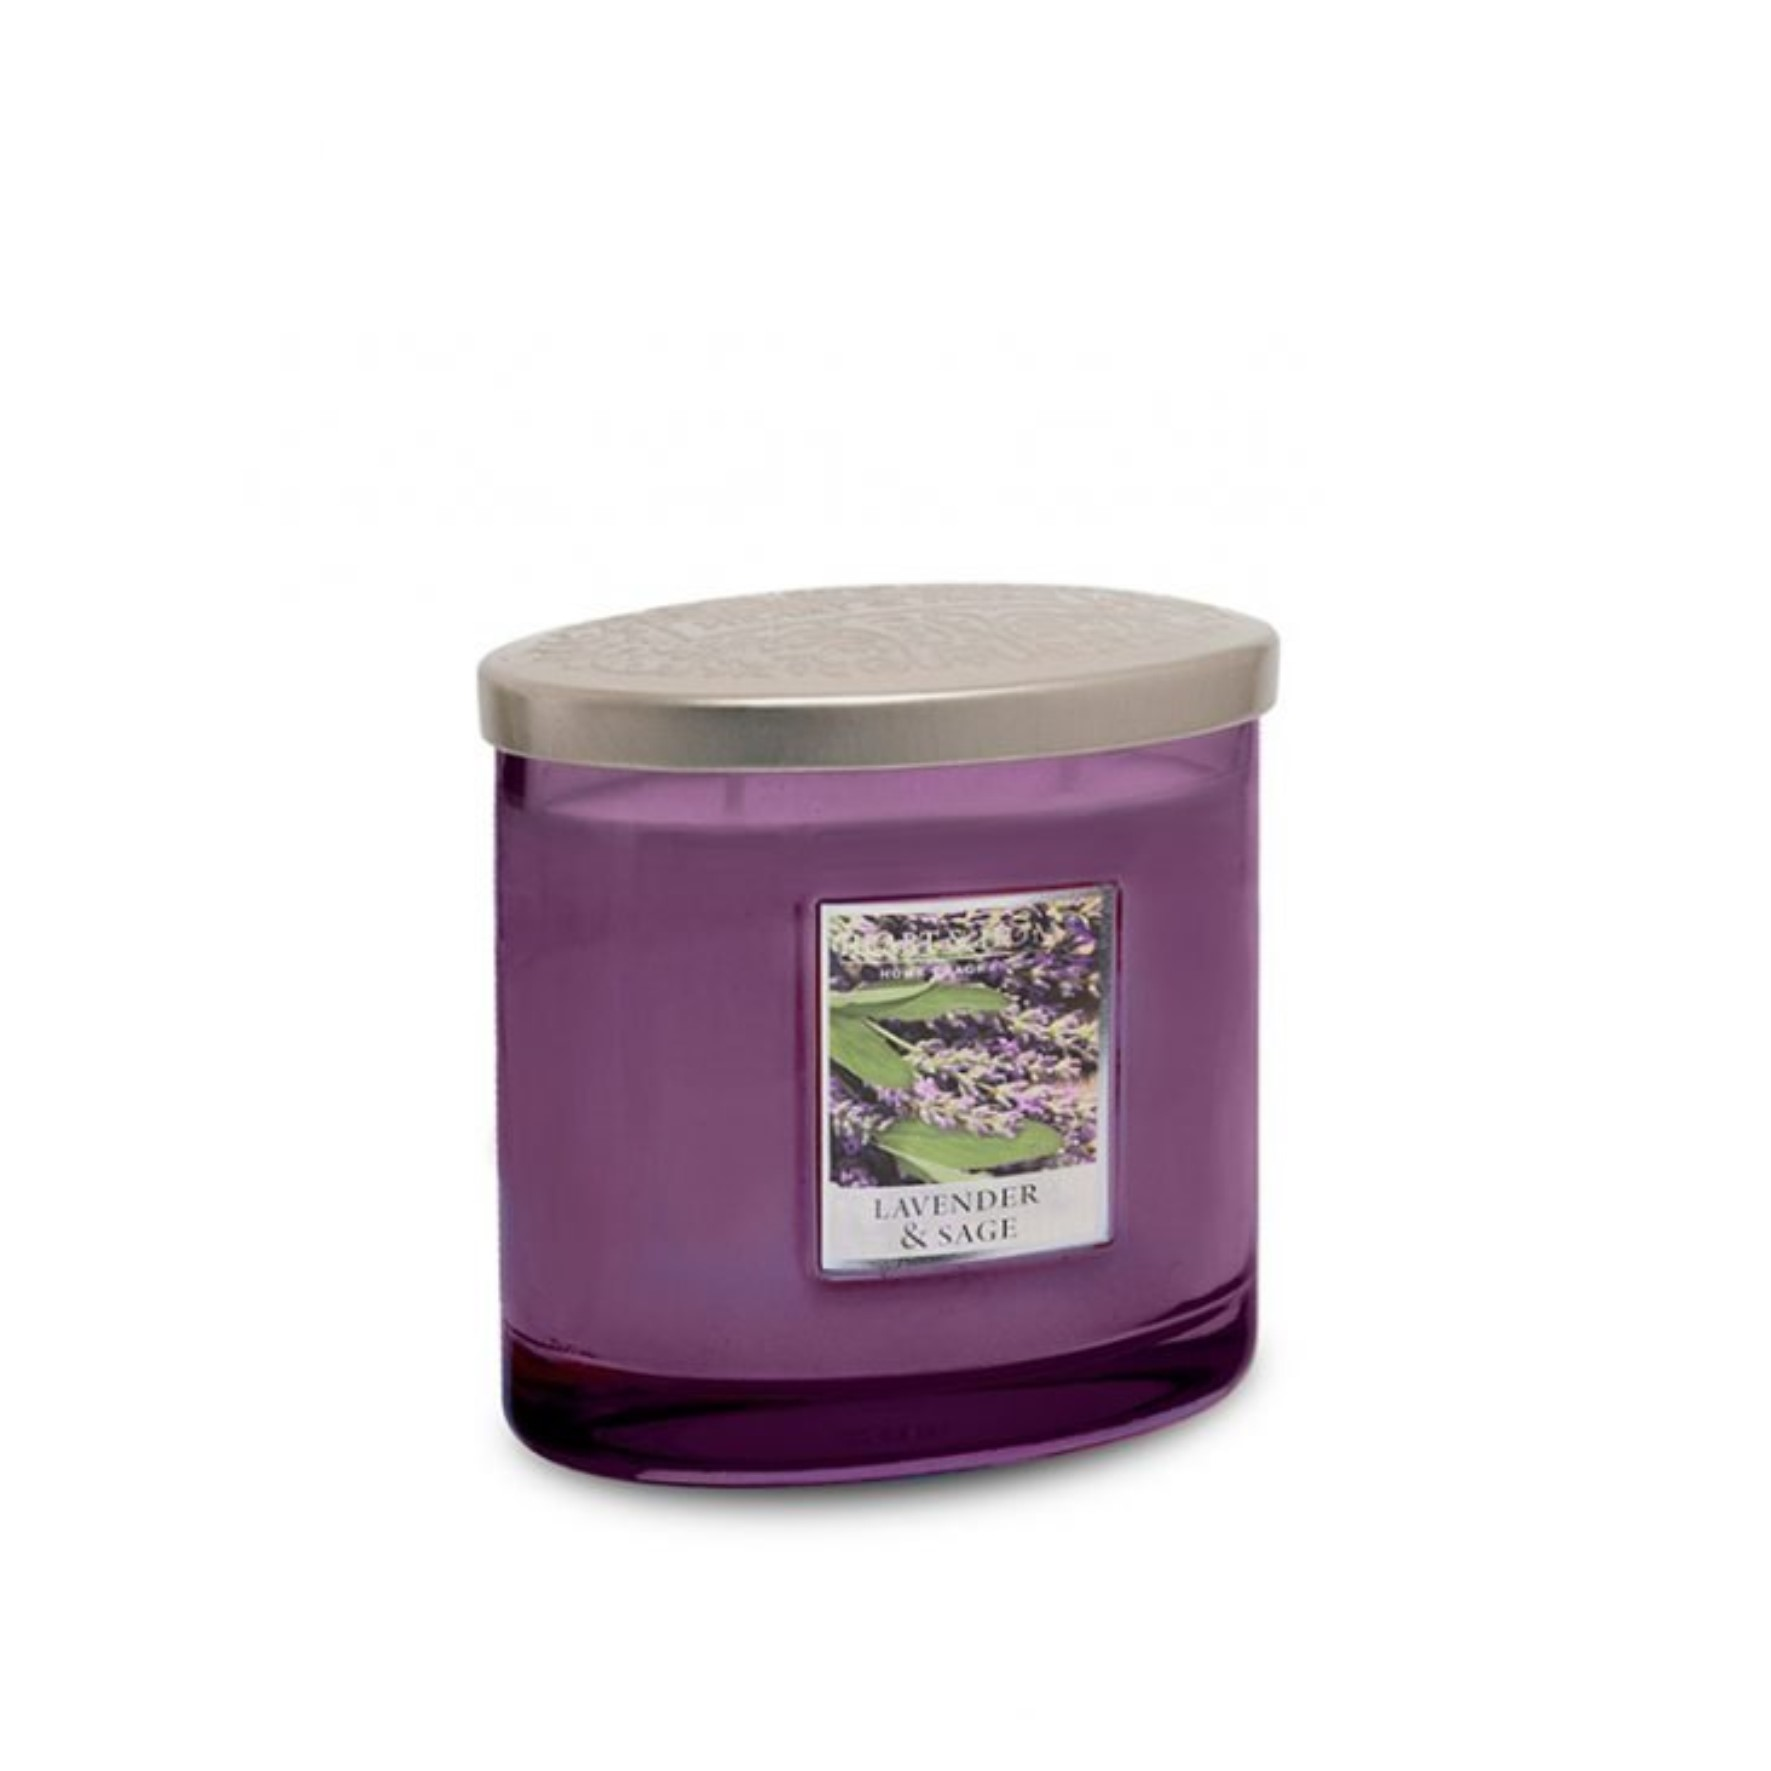 Lavender & Sage 2 Wick Candle